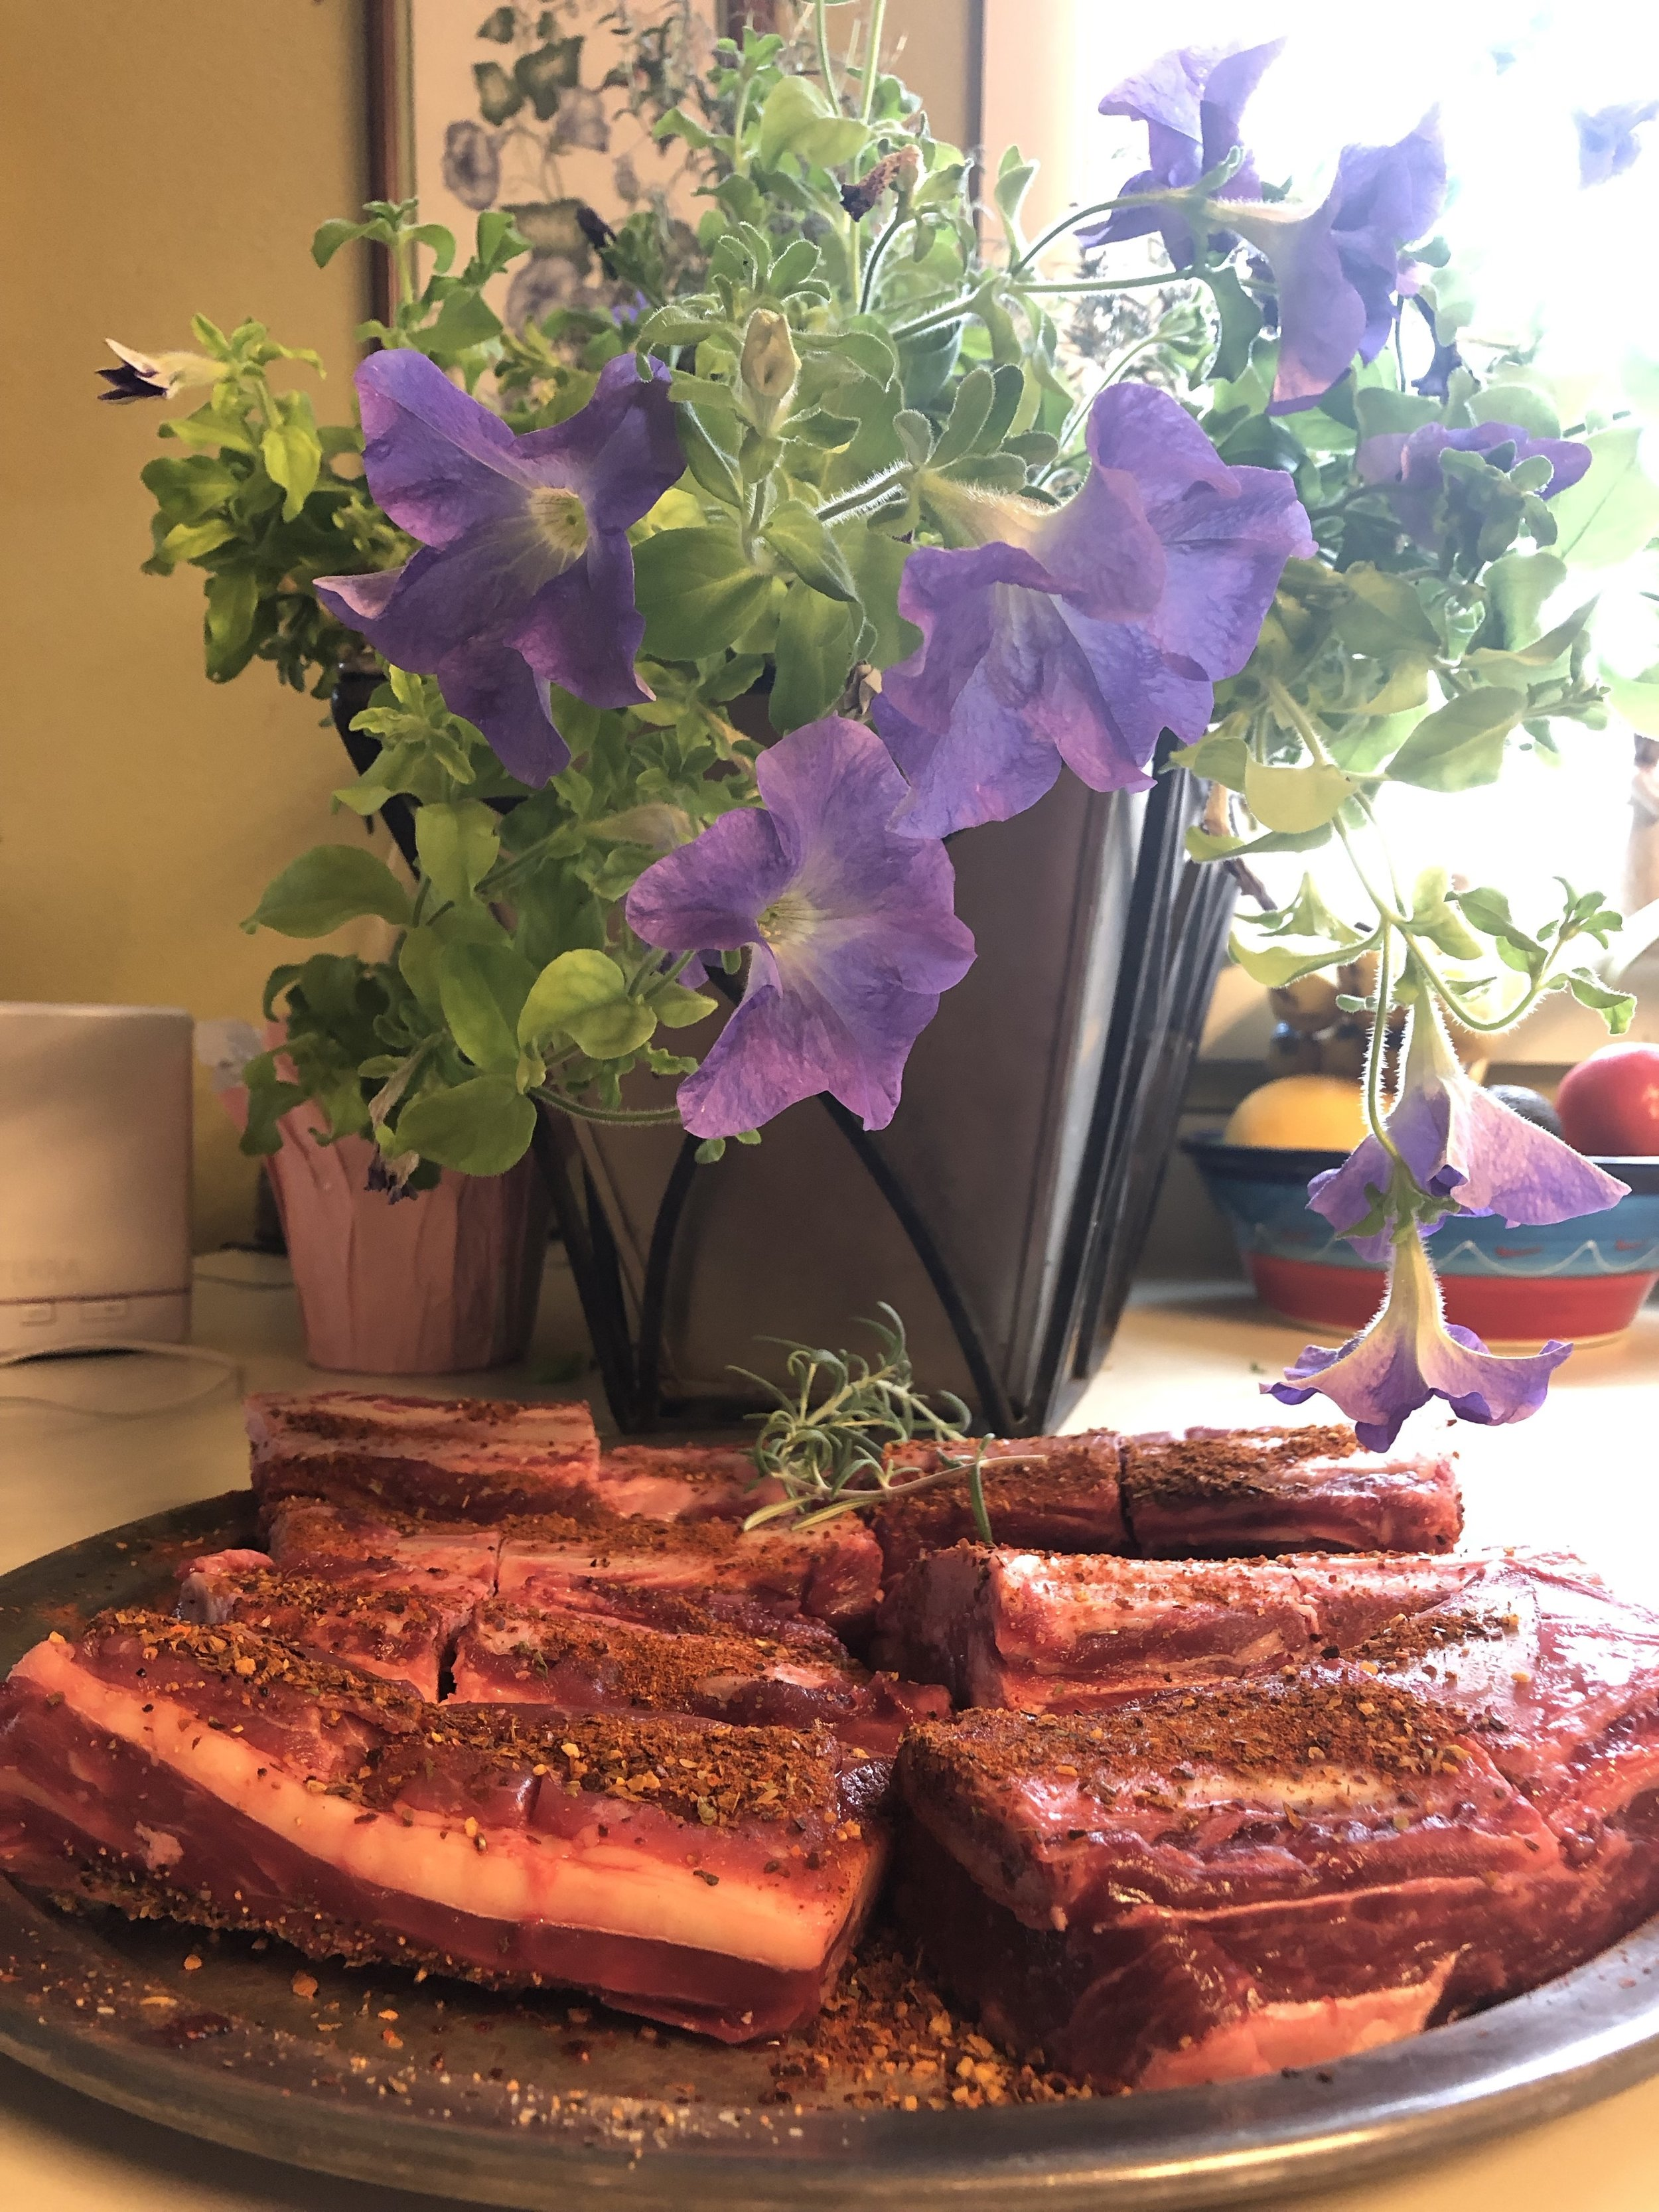 2 Packages of Short Ribs - These meaty ribs come from the rib eye section of the beef and are great for braising or slow cooking.2 ribs per package (1.25-2.5 lbs)